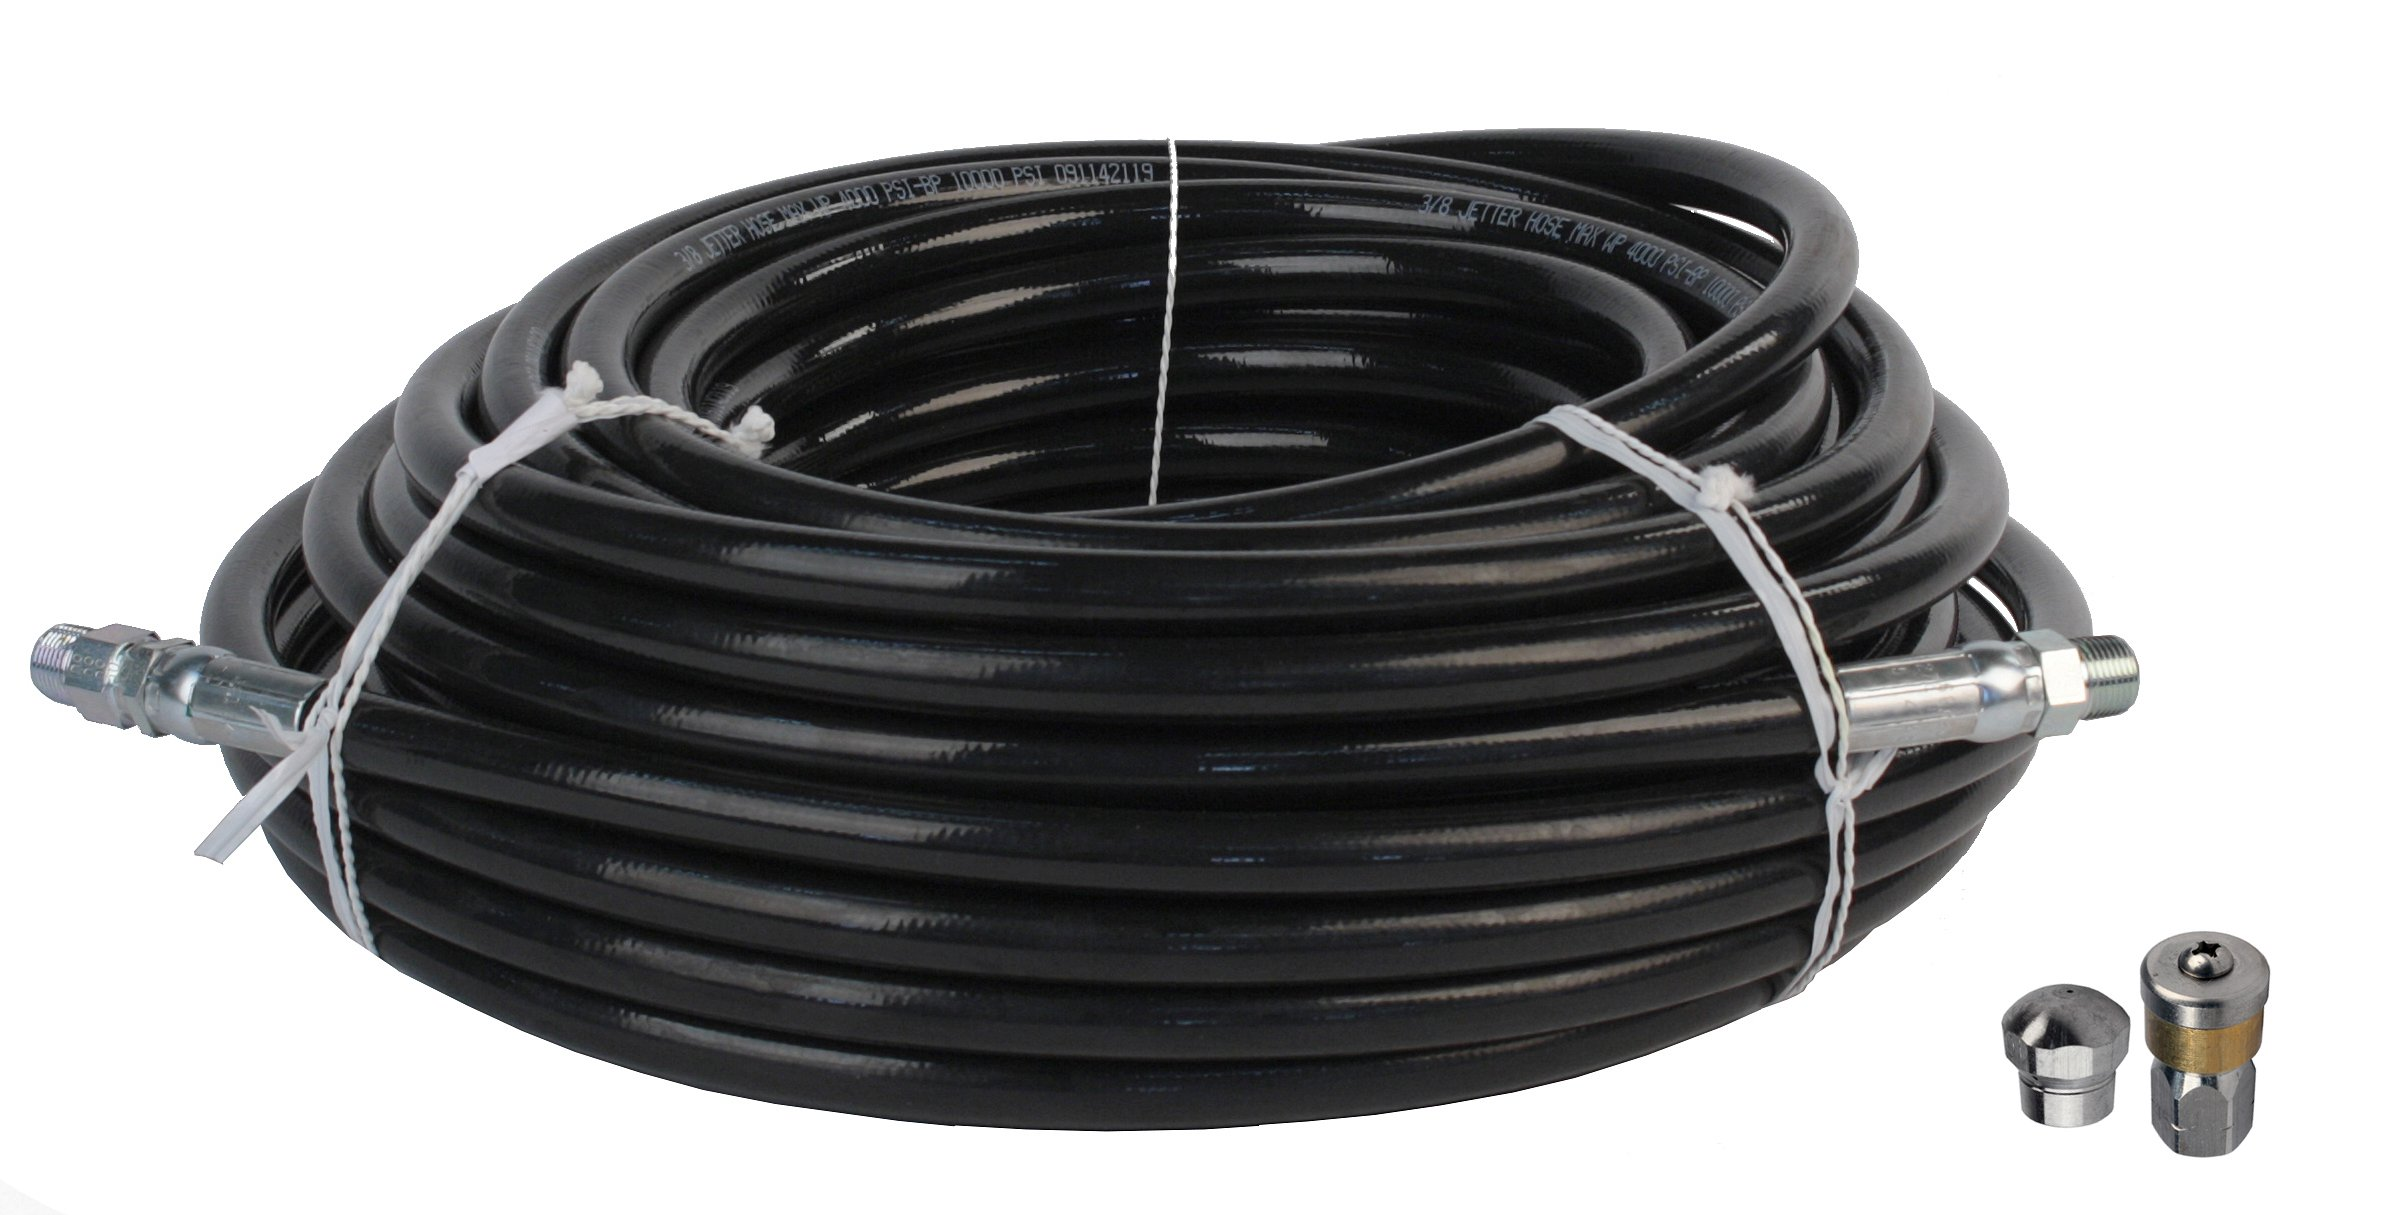 Schieffer 3/8'' x 100' 4000 PSI Thermoplastic Sewer Jetter Hose & MTM Hydro 8.0 Orifice Button Nose and Rotating Nozzles